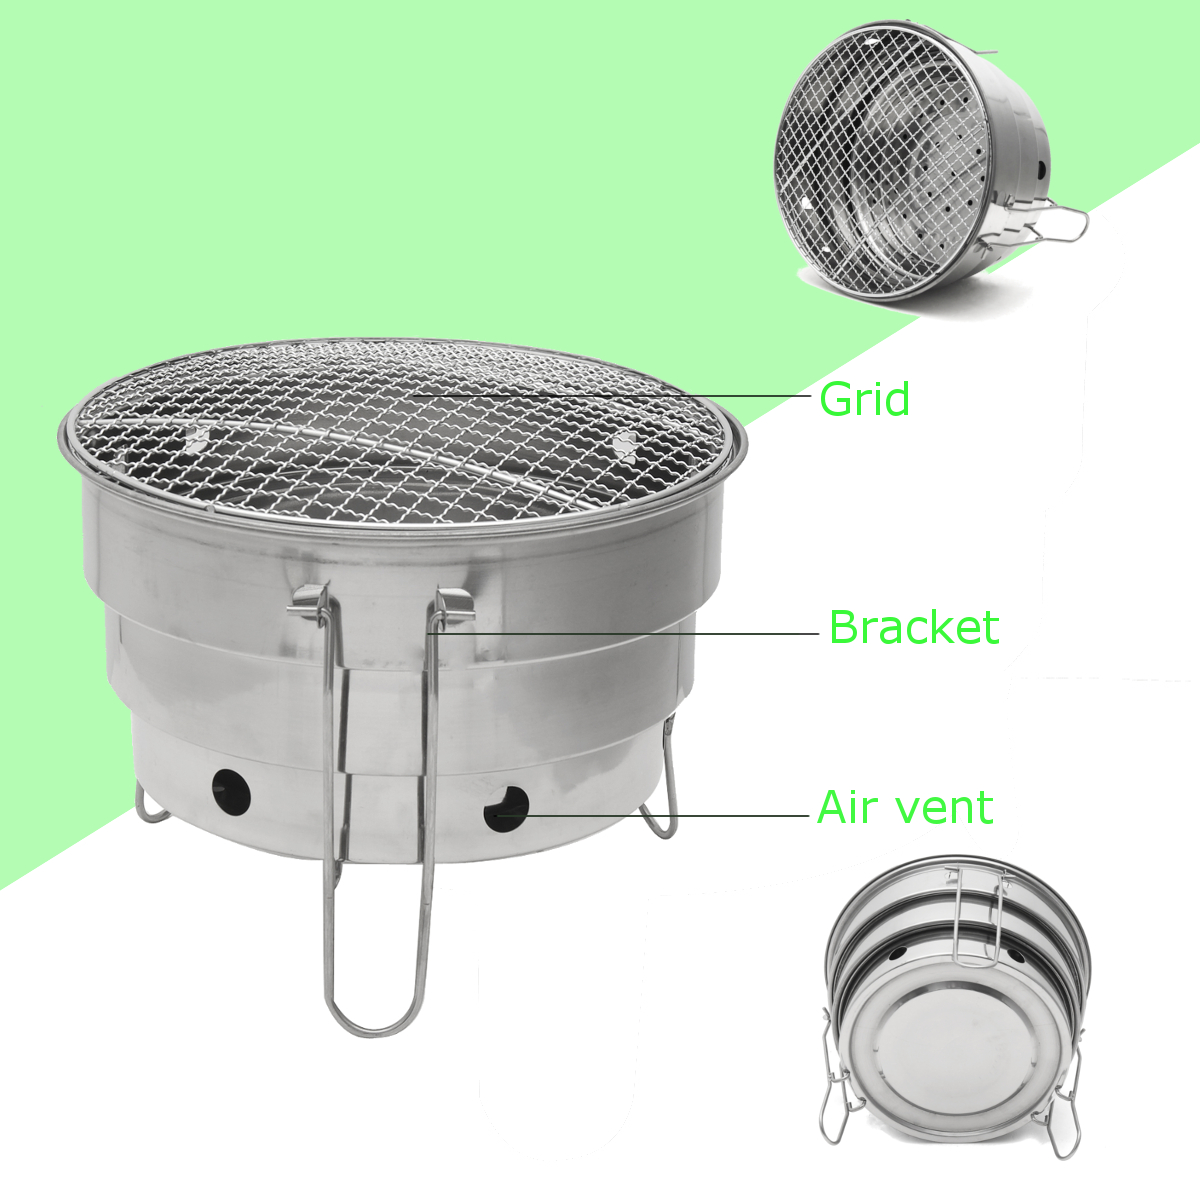 Picnic BBQ Barbecue Charcoal Grill Folding Portable Outdoor Camping Burner Patio Cooking Stove